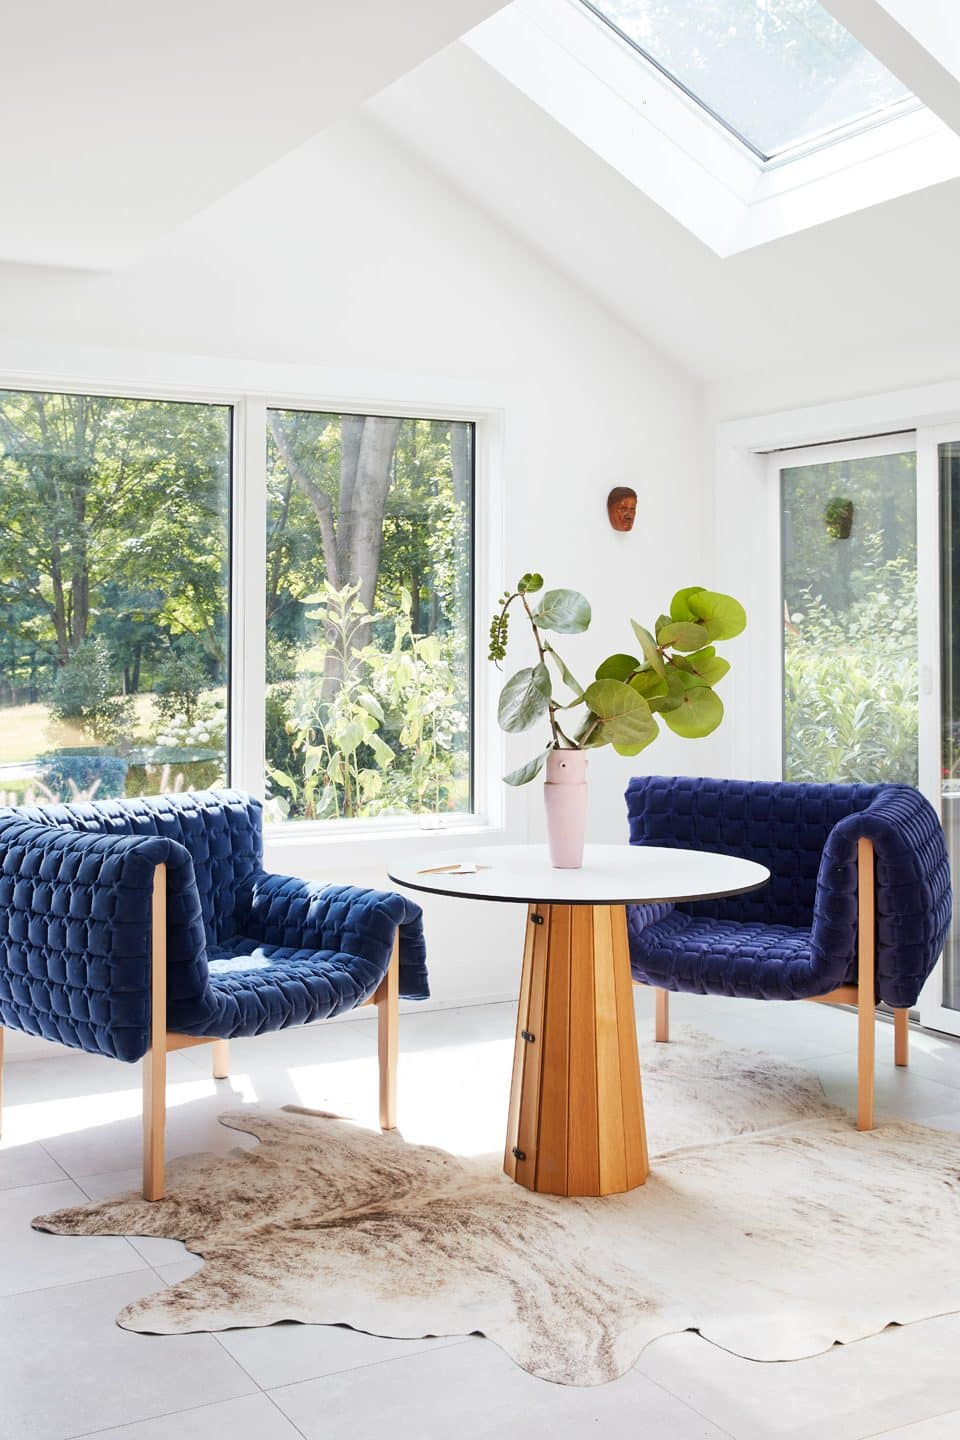 An Upbeat Sense of Adventure Infuses Danielle Fennoy's Bright, Colorful Spaces